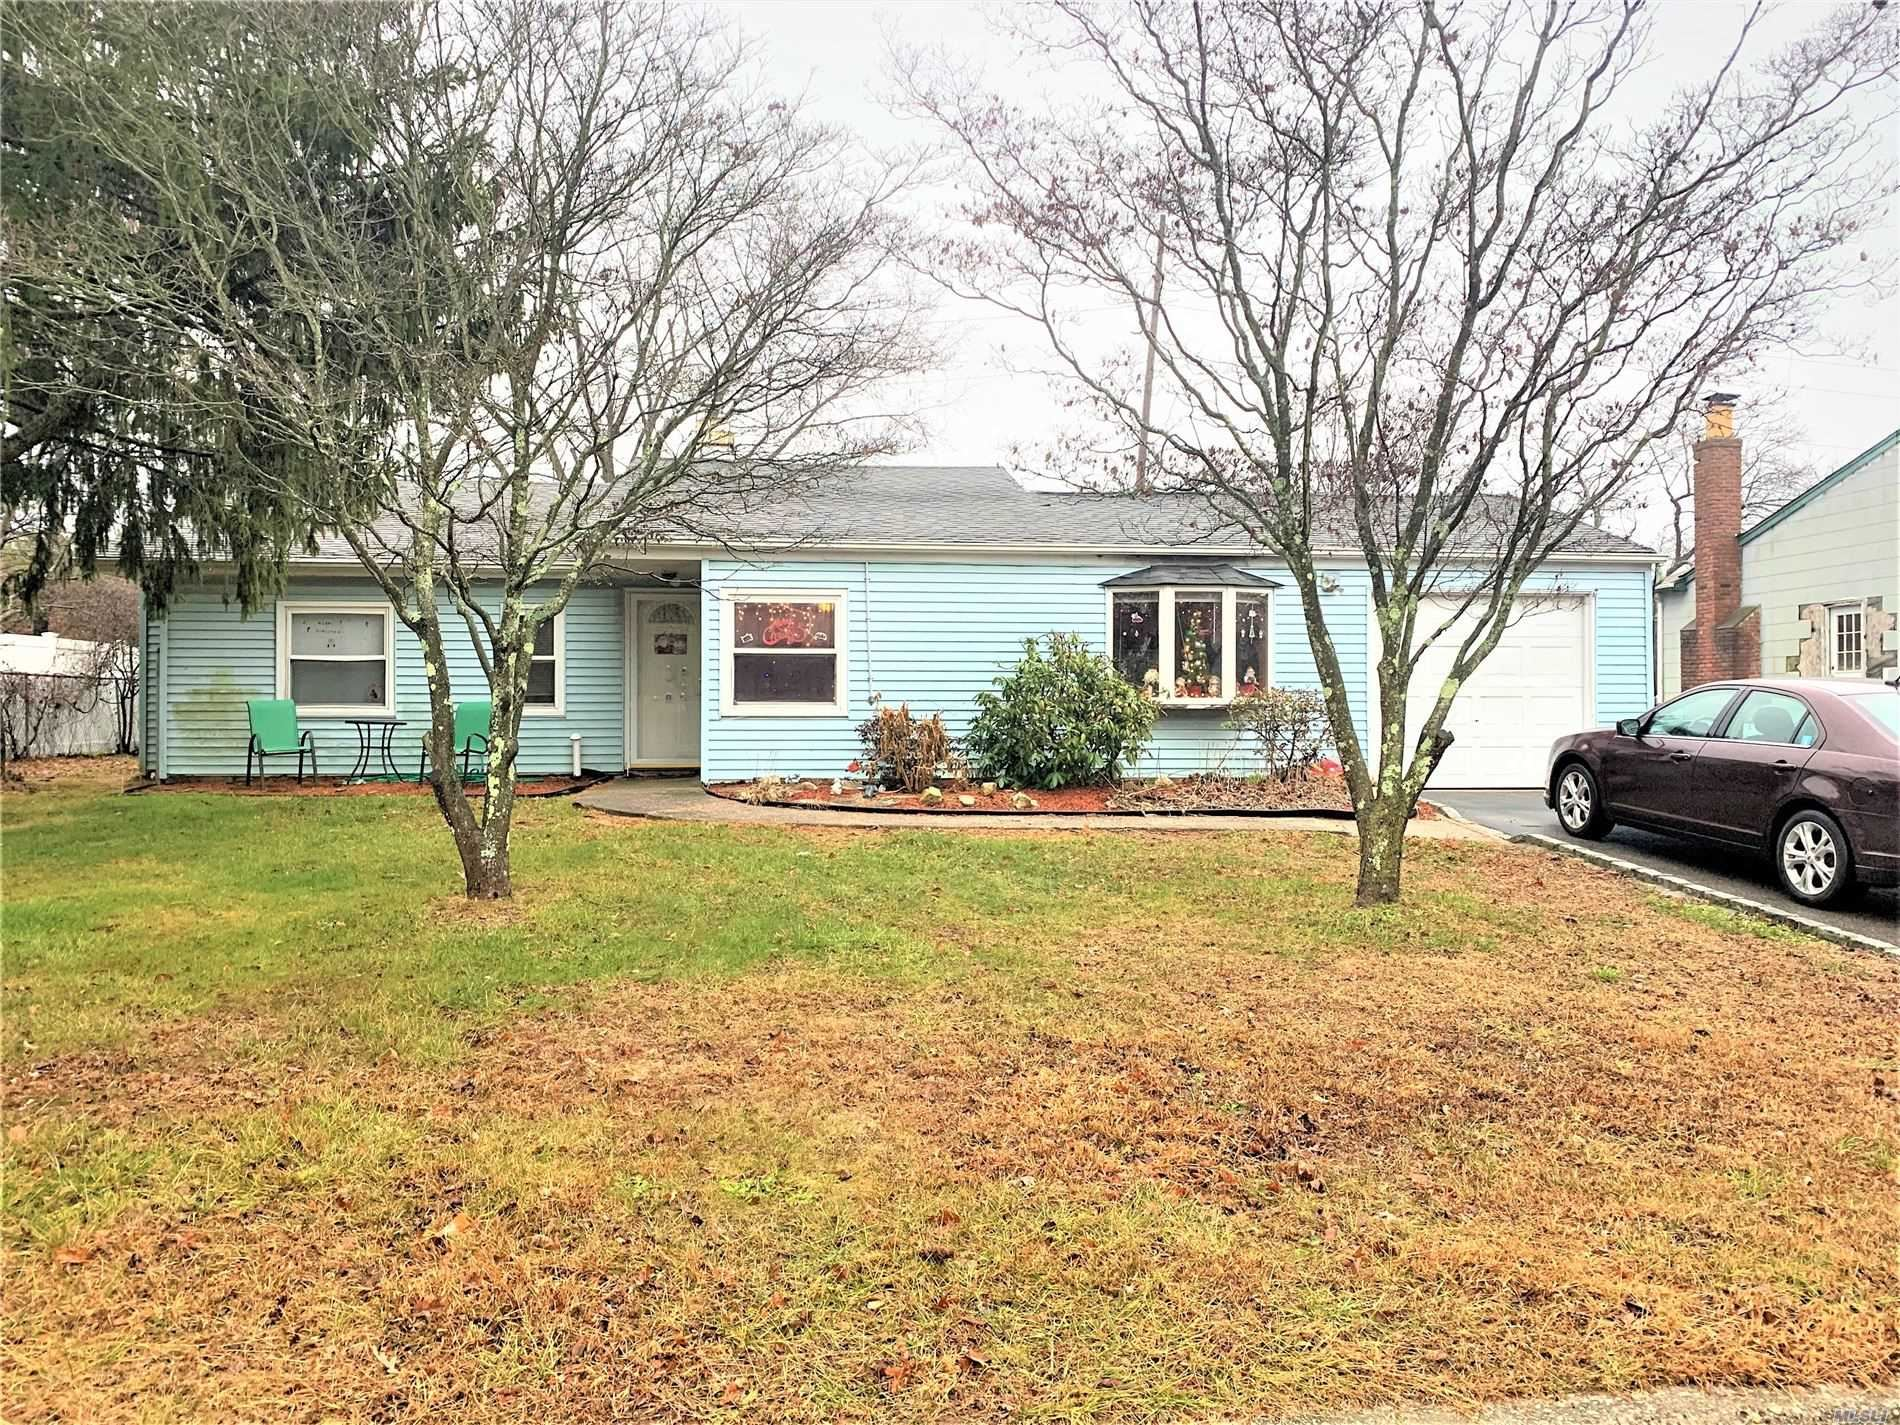 17 Victoria Circle, Patchogue, NY 11772 - MLS#: 3185540